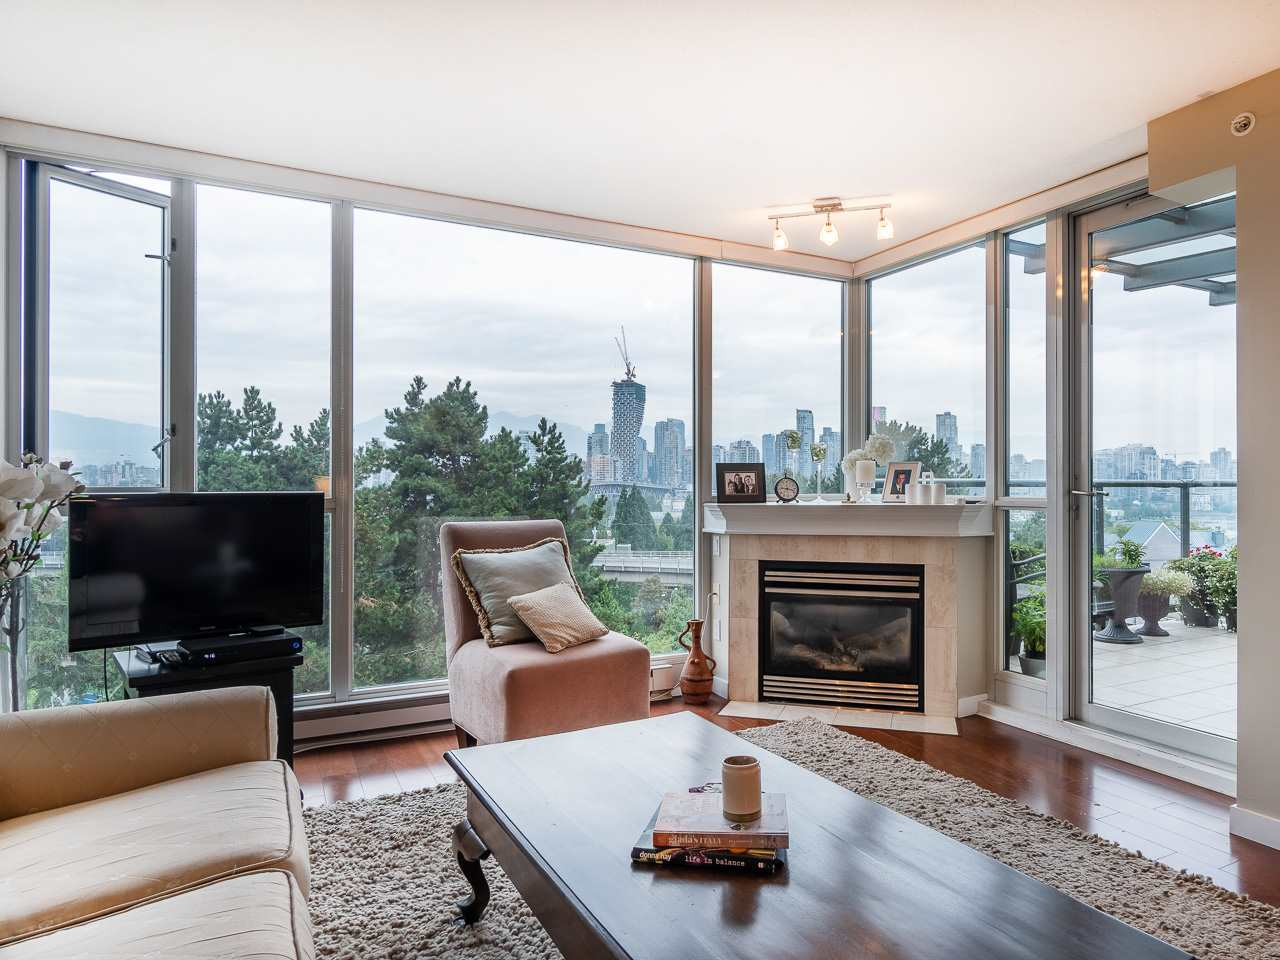 Buliding: 1425 West 6th Avenue, Vancouver, BC